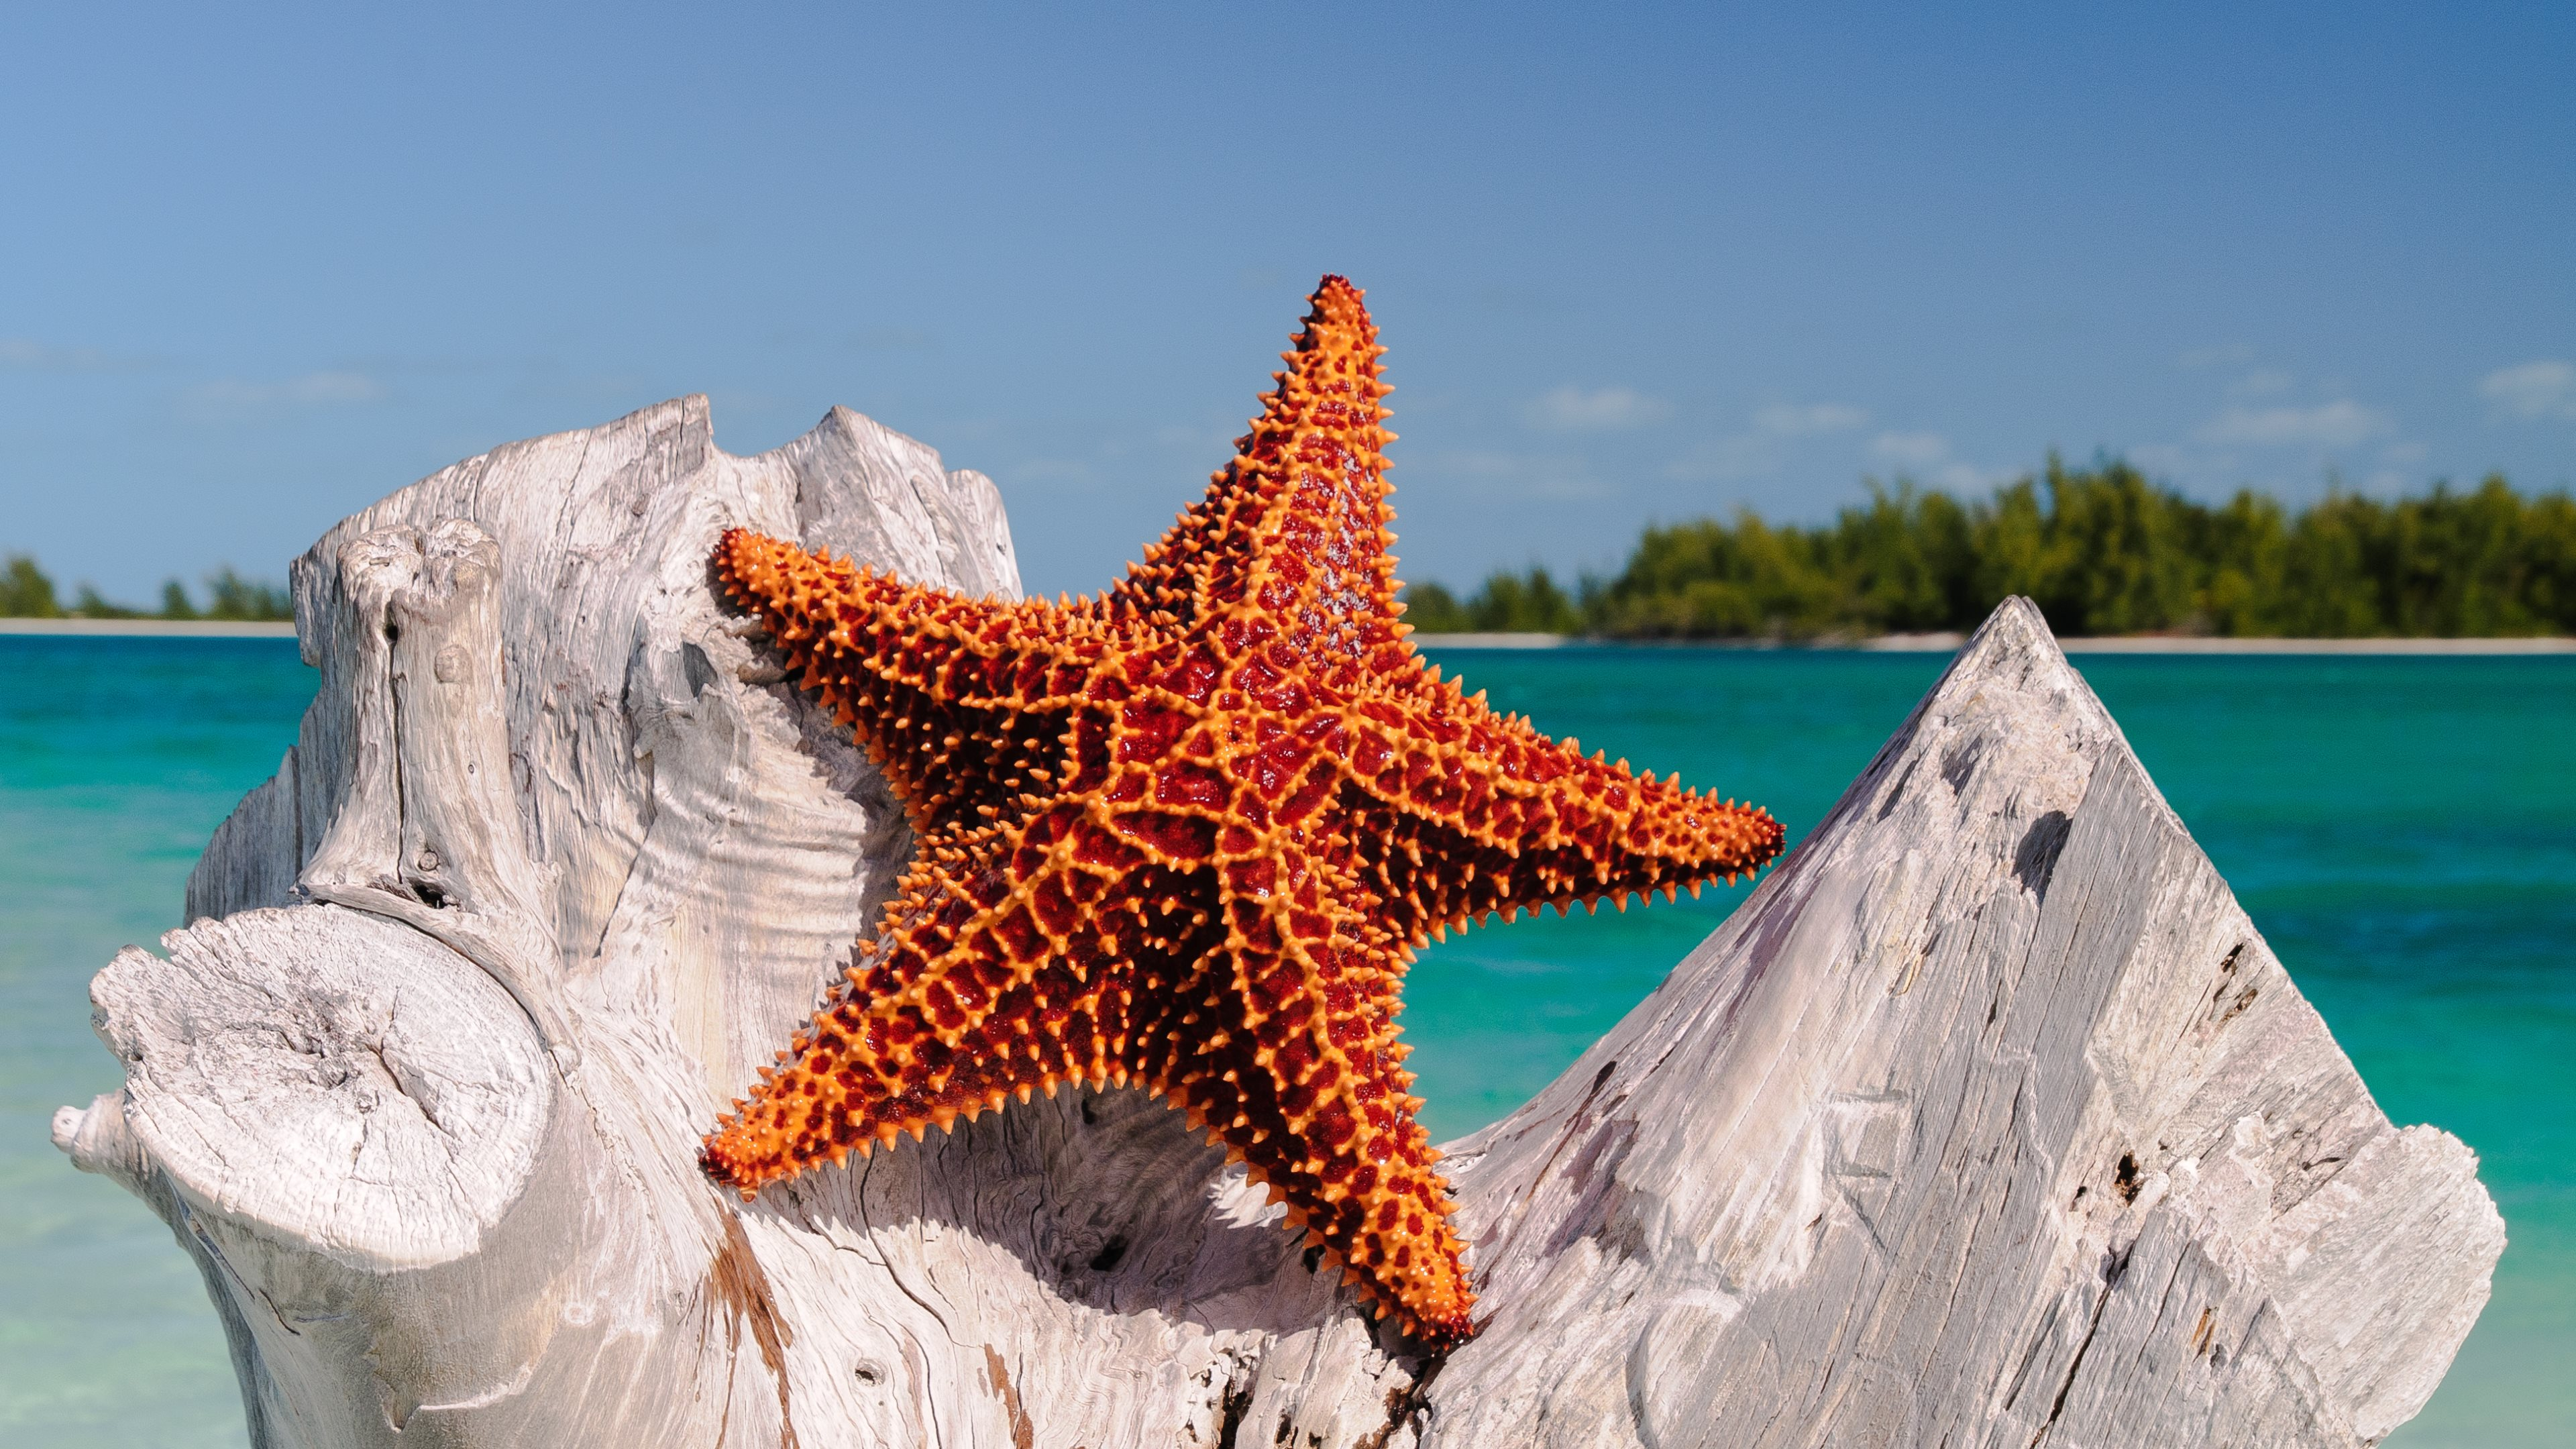 Starfish Wallpapers Pictures Images HD Wallpapers Download Free Images Wallpaper [1000image.com]